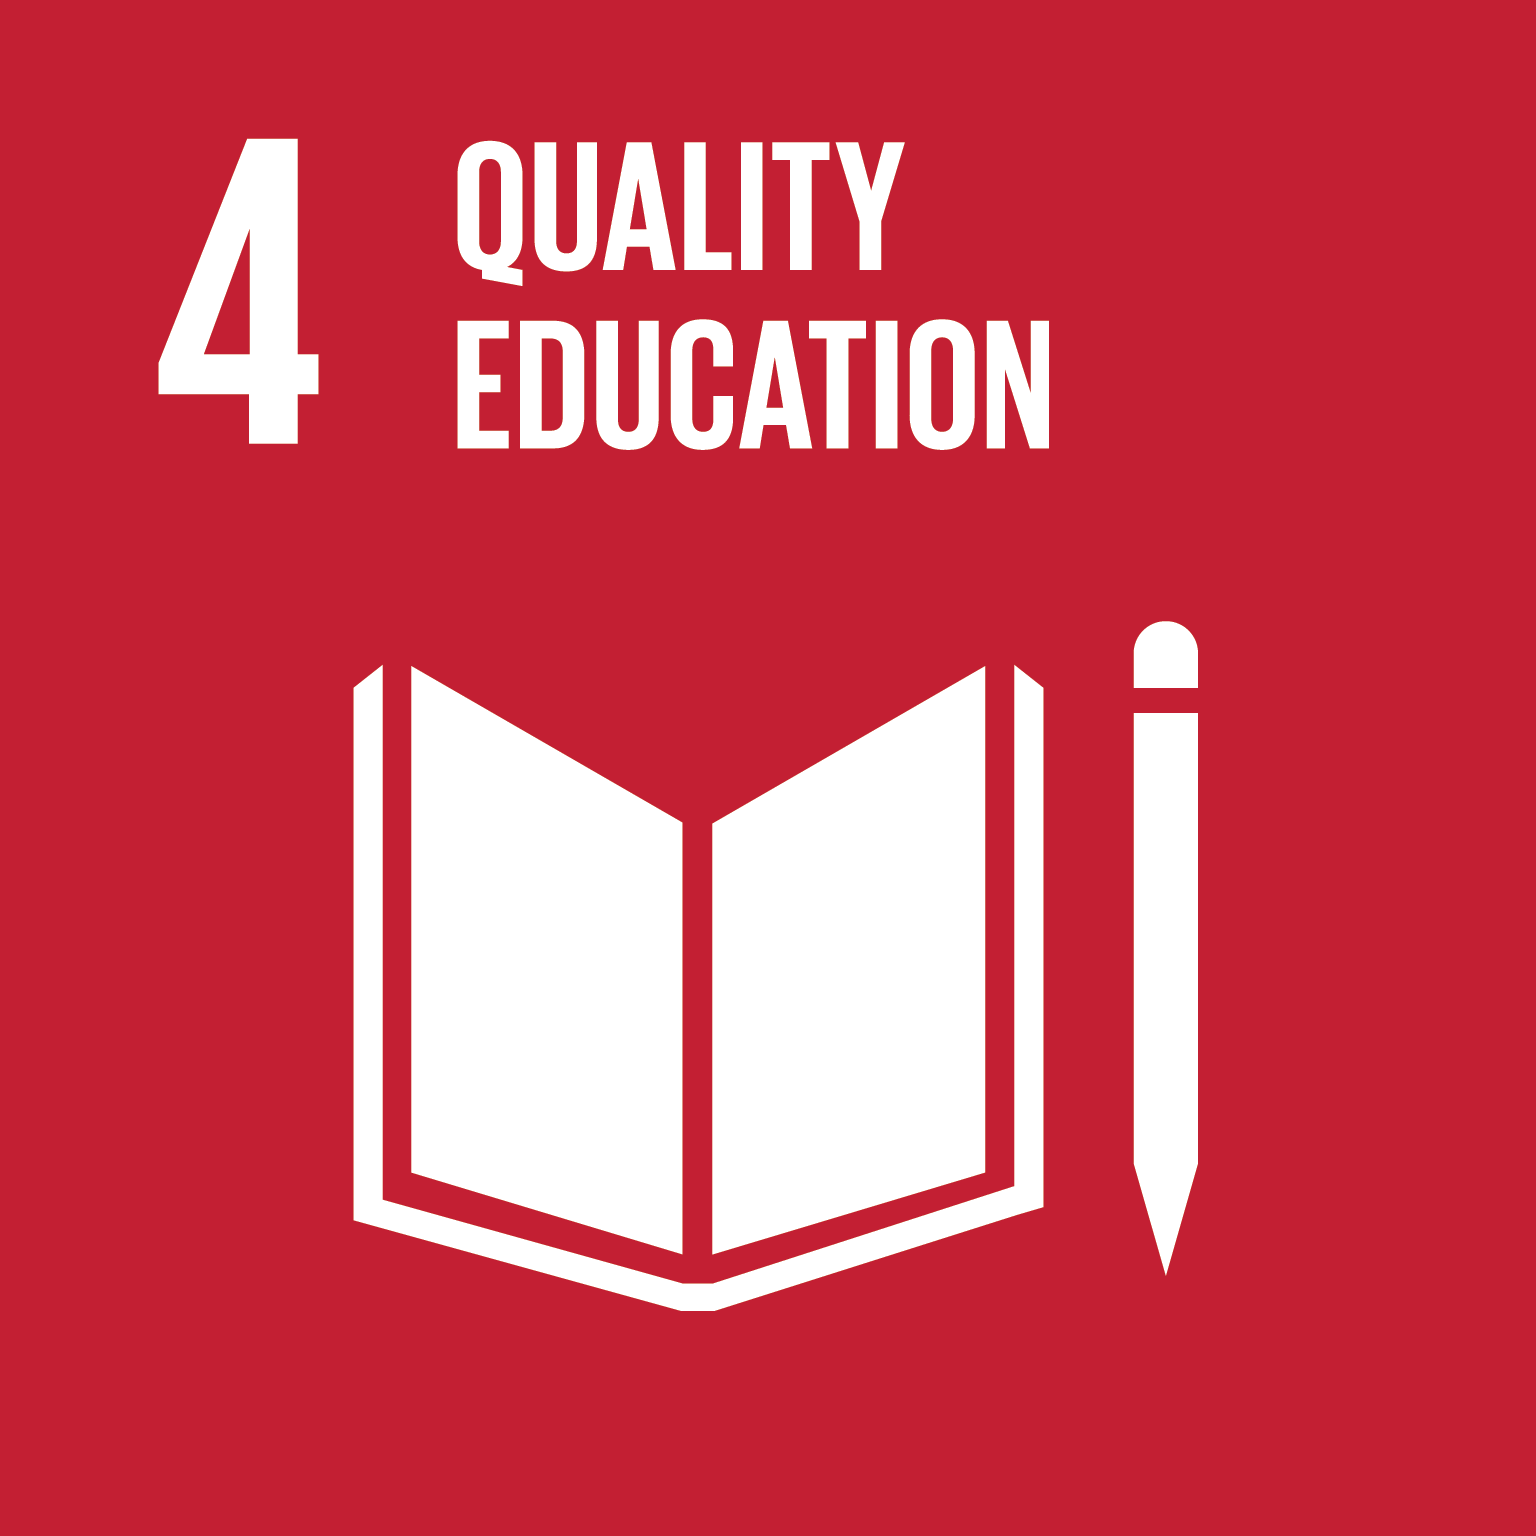 SDG 4 Sustainable Development Goal